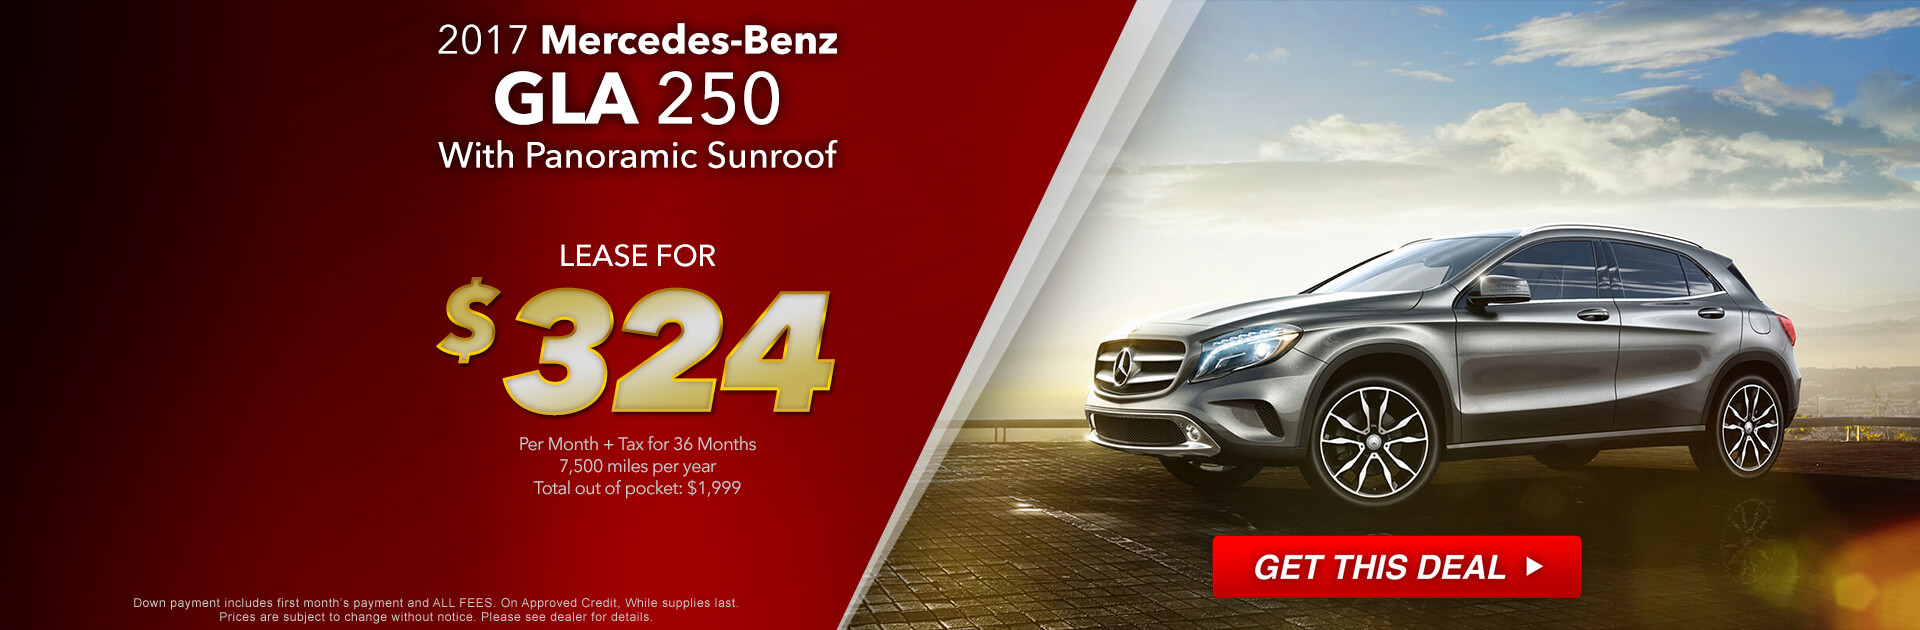 MBZ GLA Lease